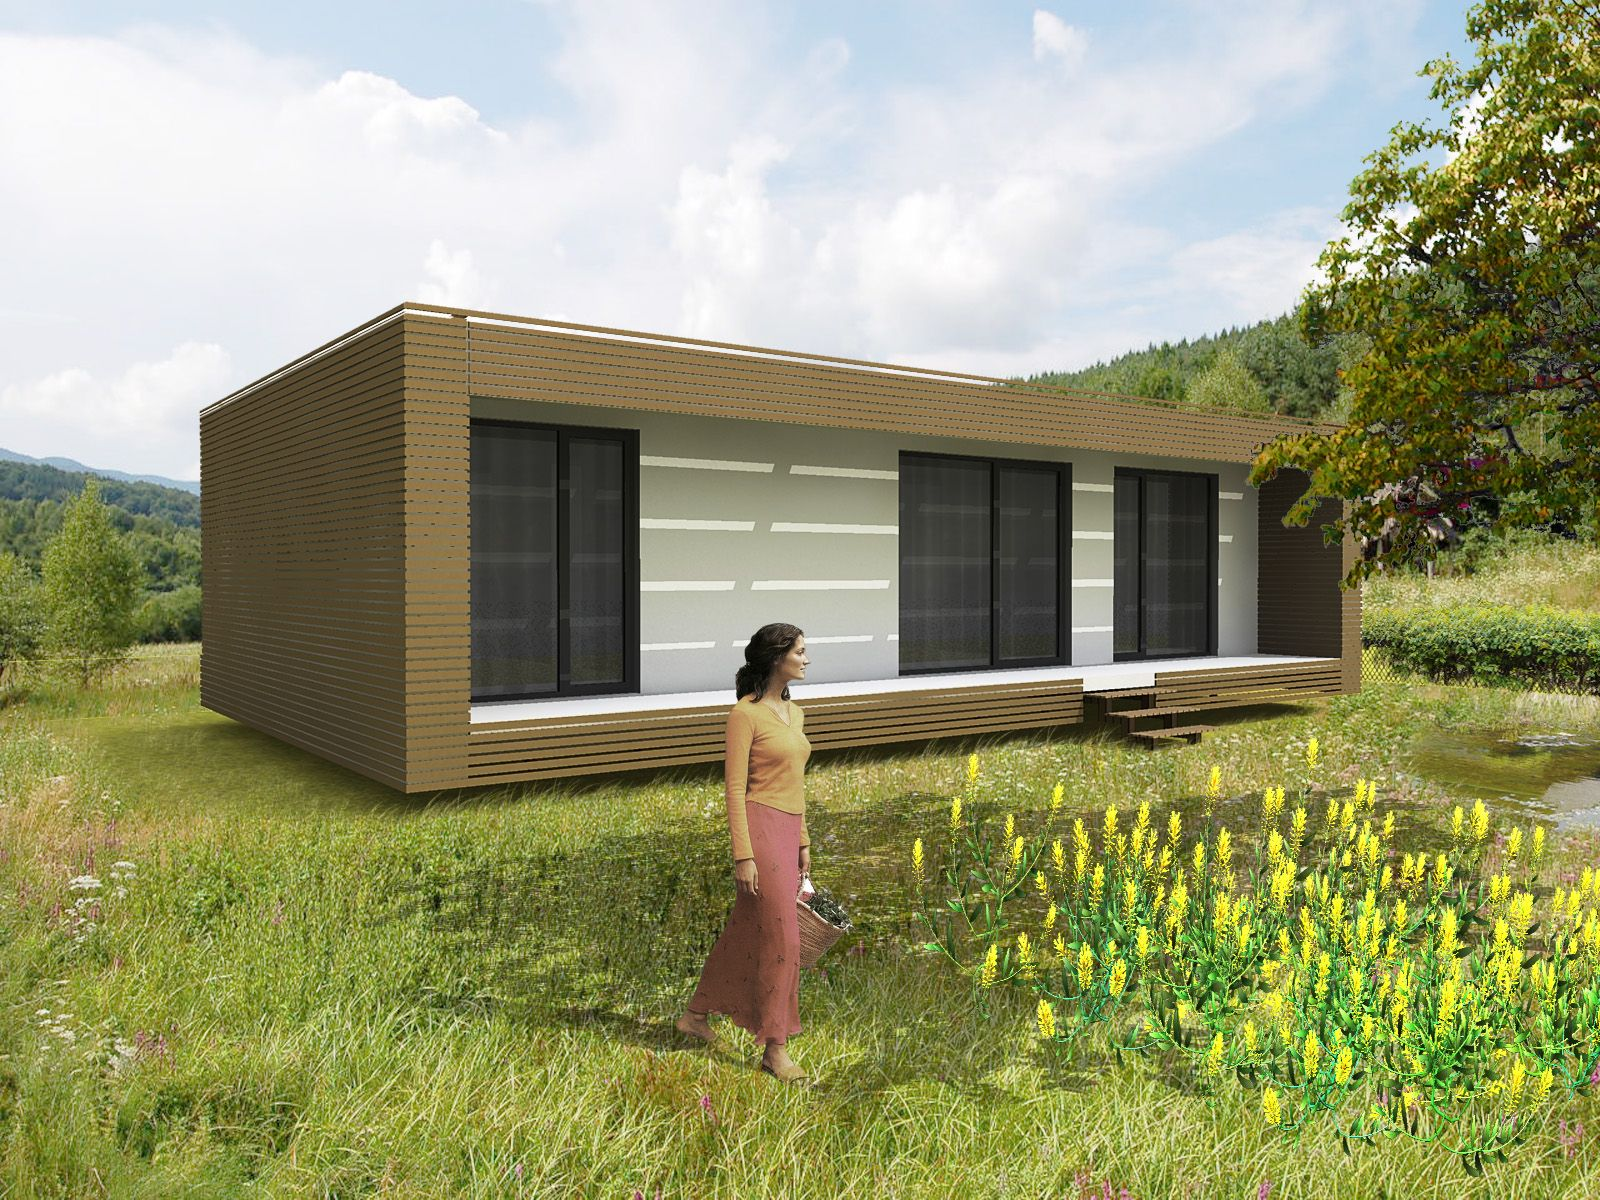 Nest Box Combines Passivhaus And Prefab For Low Cost Green Housing House Designs Exterior Modern Prefab Homes Modular Home Floor Plans